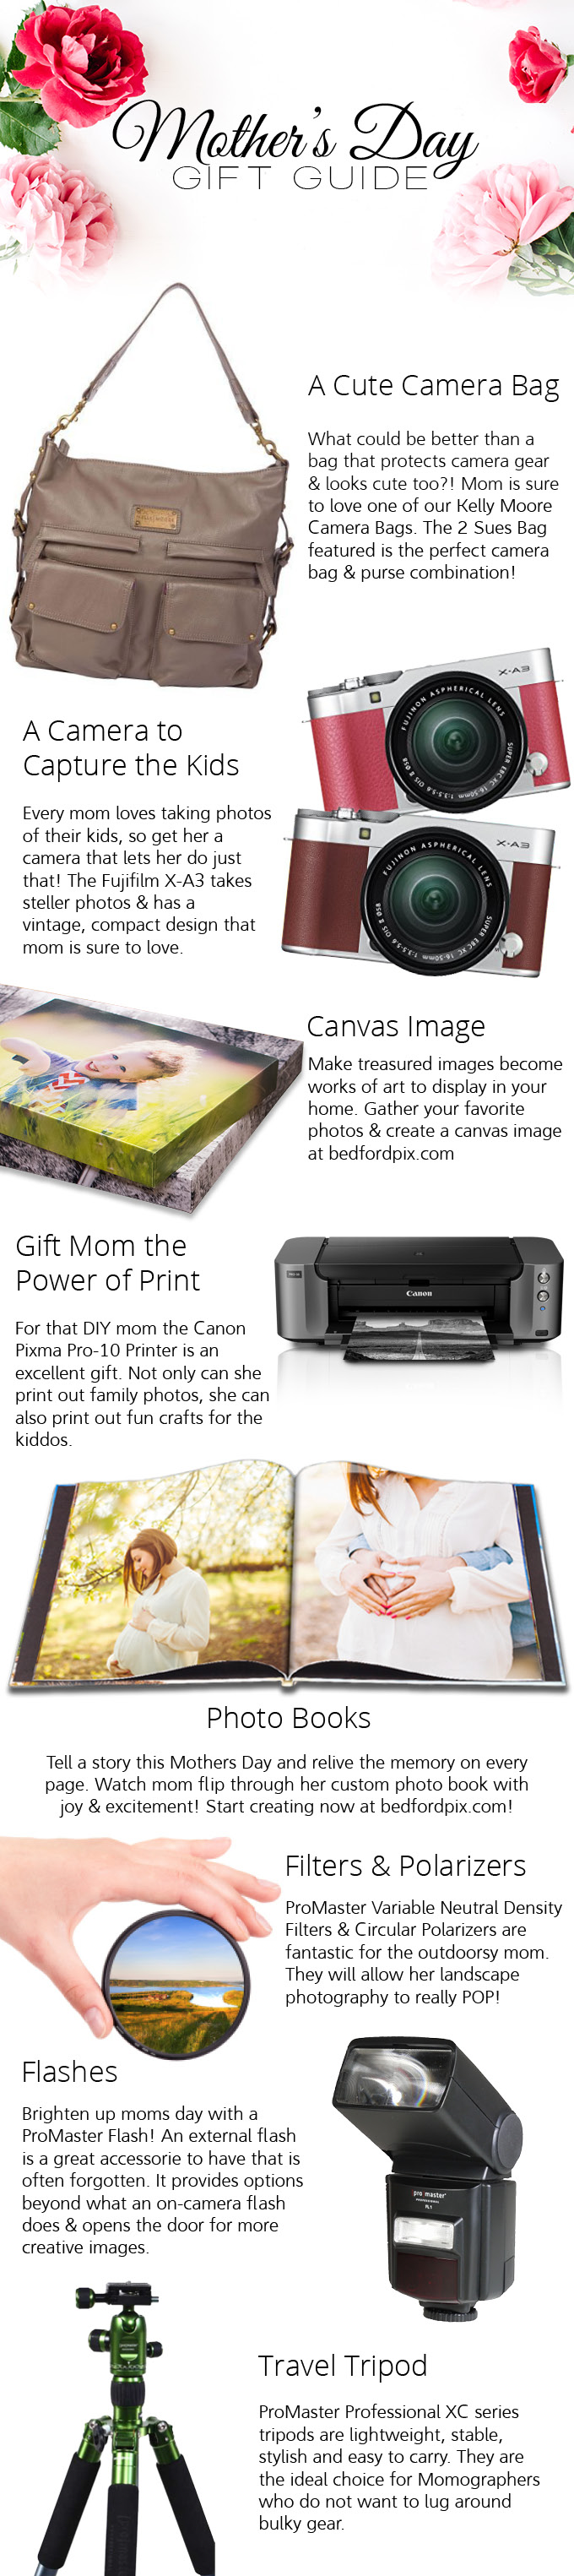 Mother's Day Gift Guide Blog.cxx